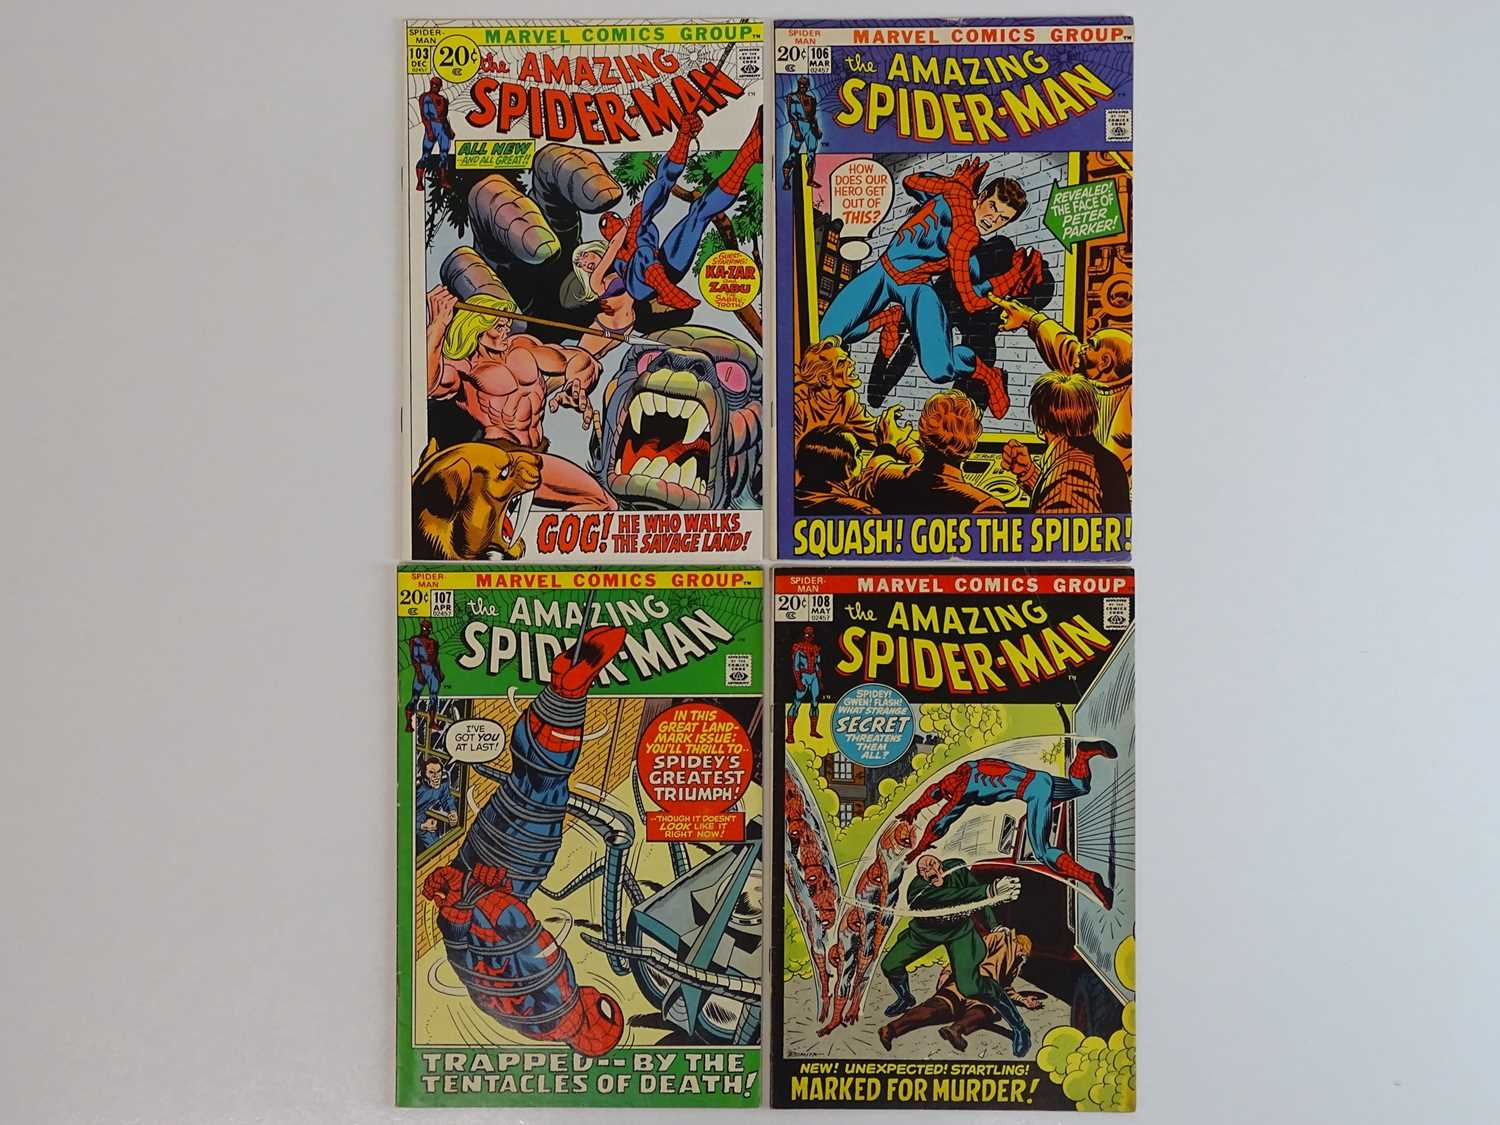 AMAZING SPIDER-MAN #103, 106, 107, 108 - (4 in Lot) - (1971/72 - MARVEL) - Includes First appearance